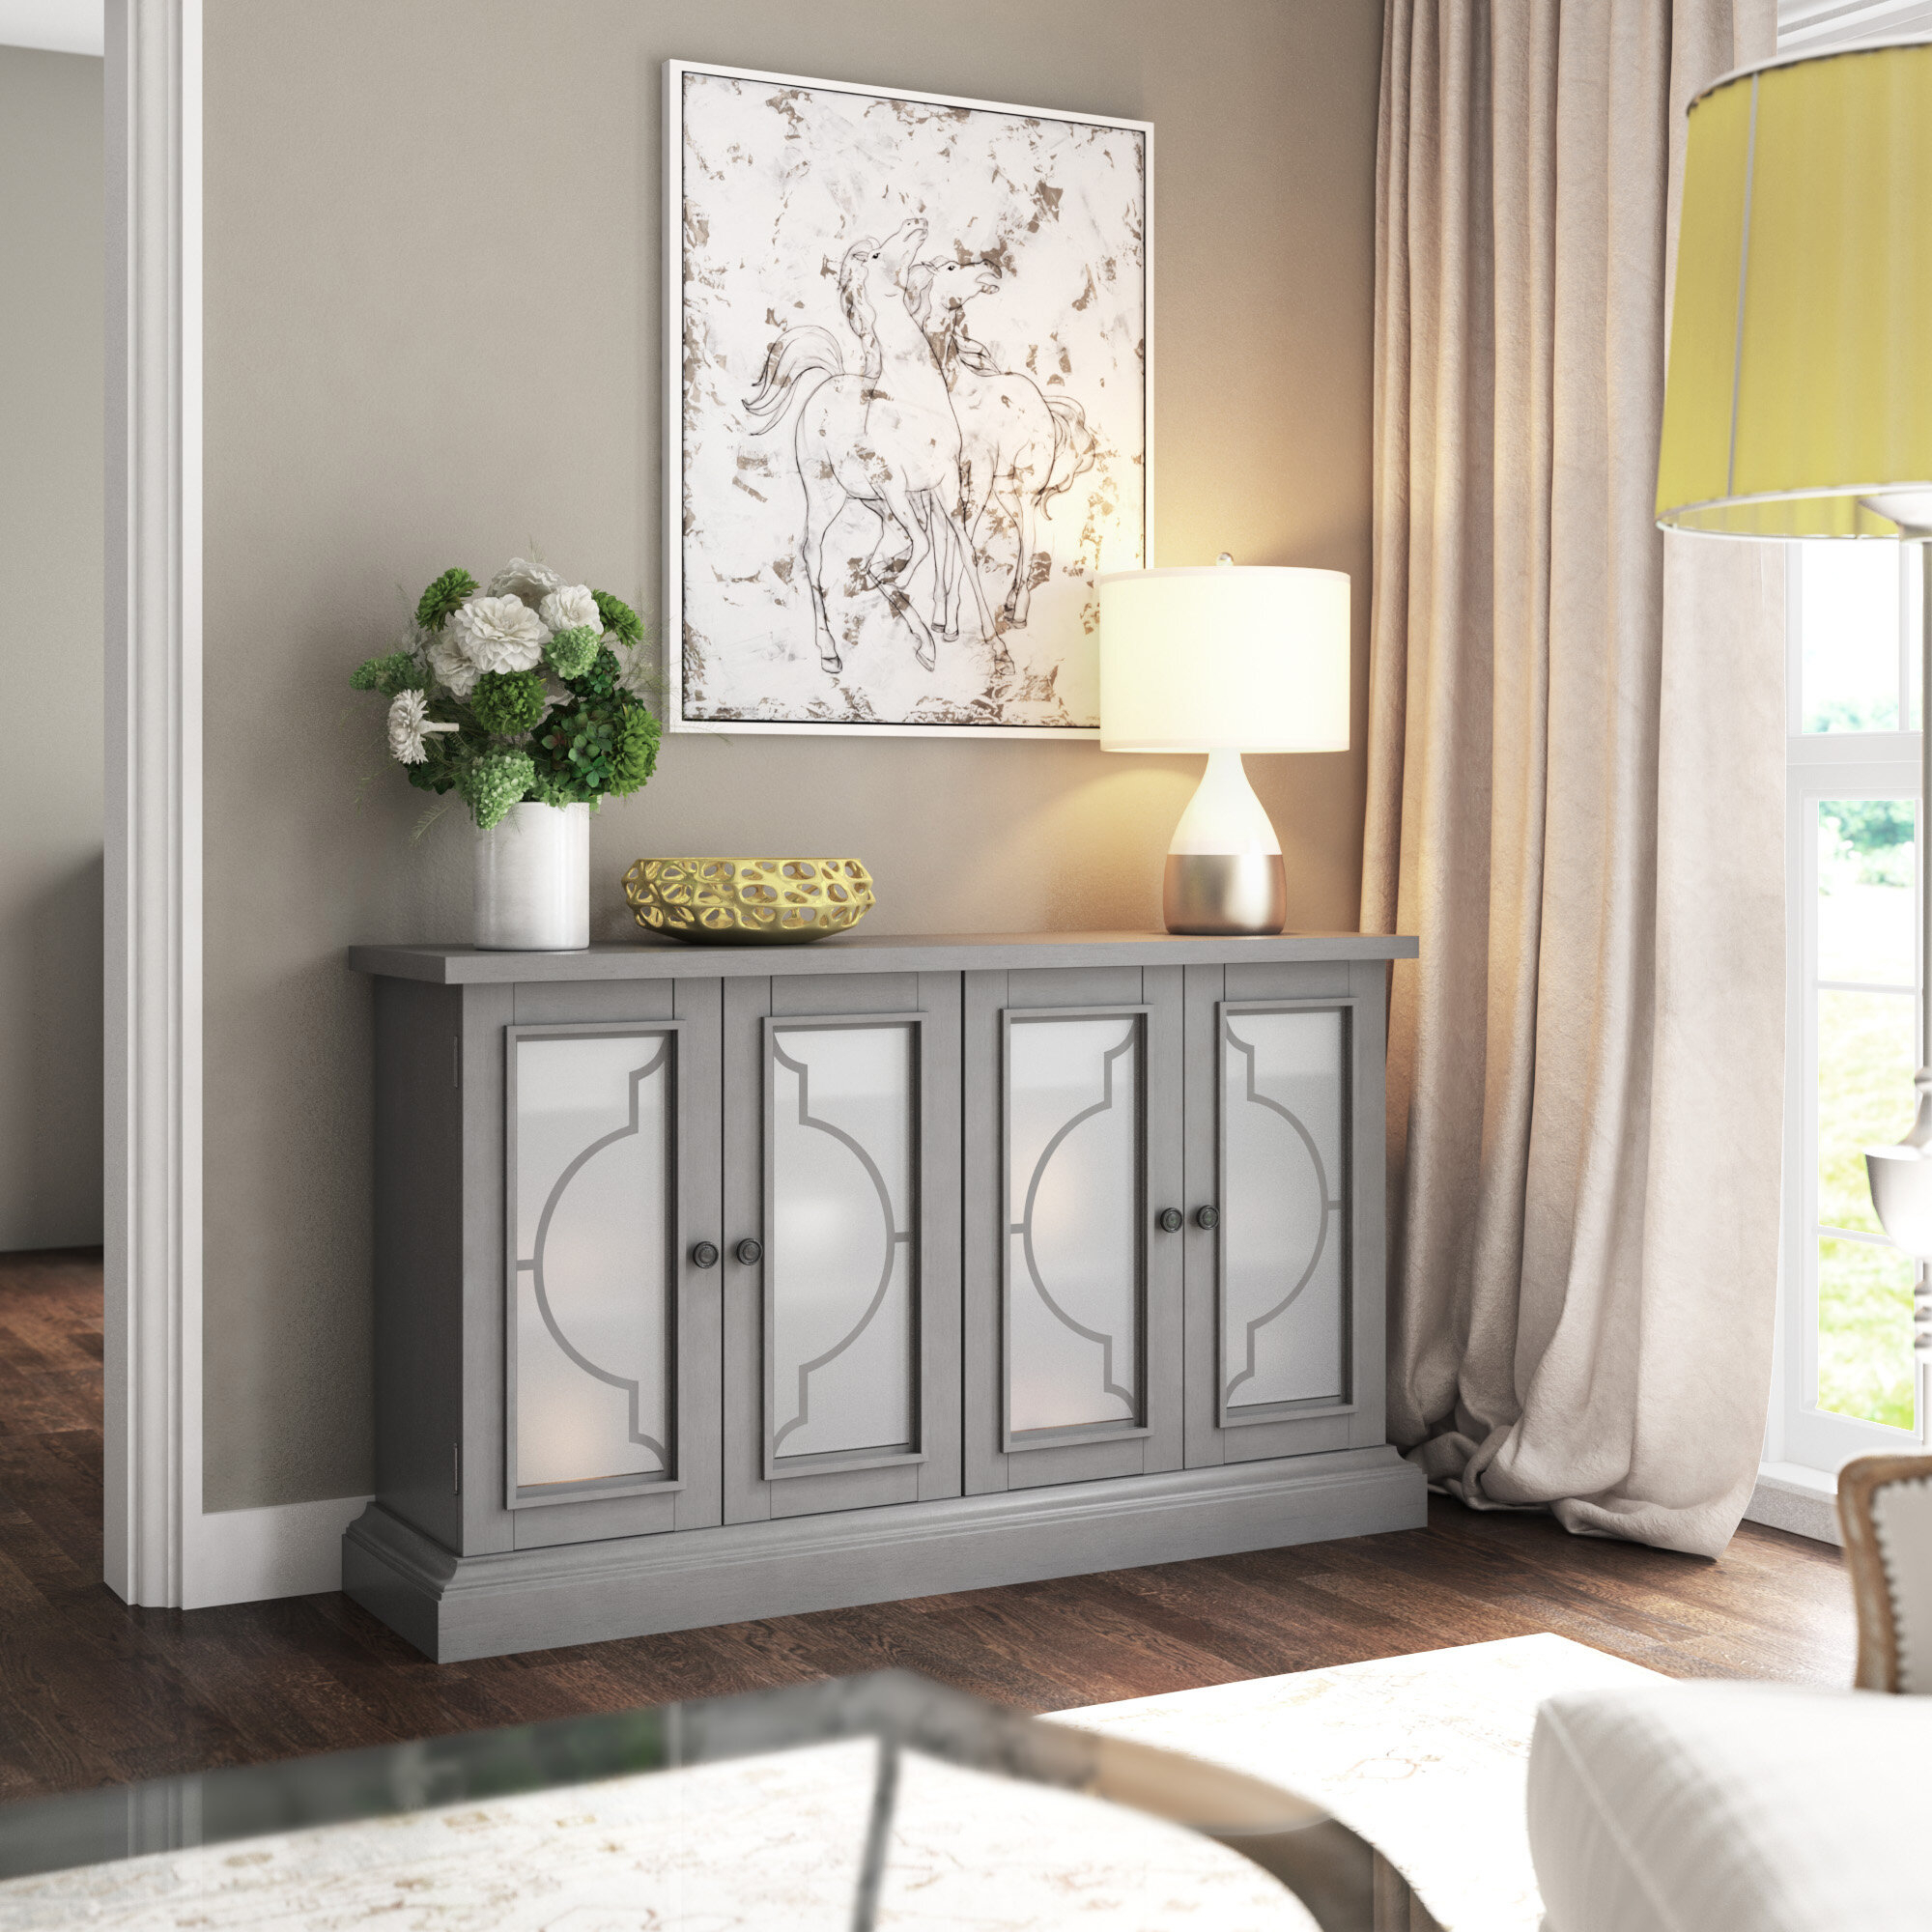 Popular Photo of Joyner Sideboards